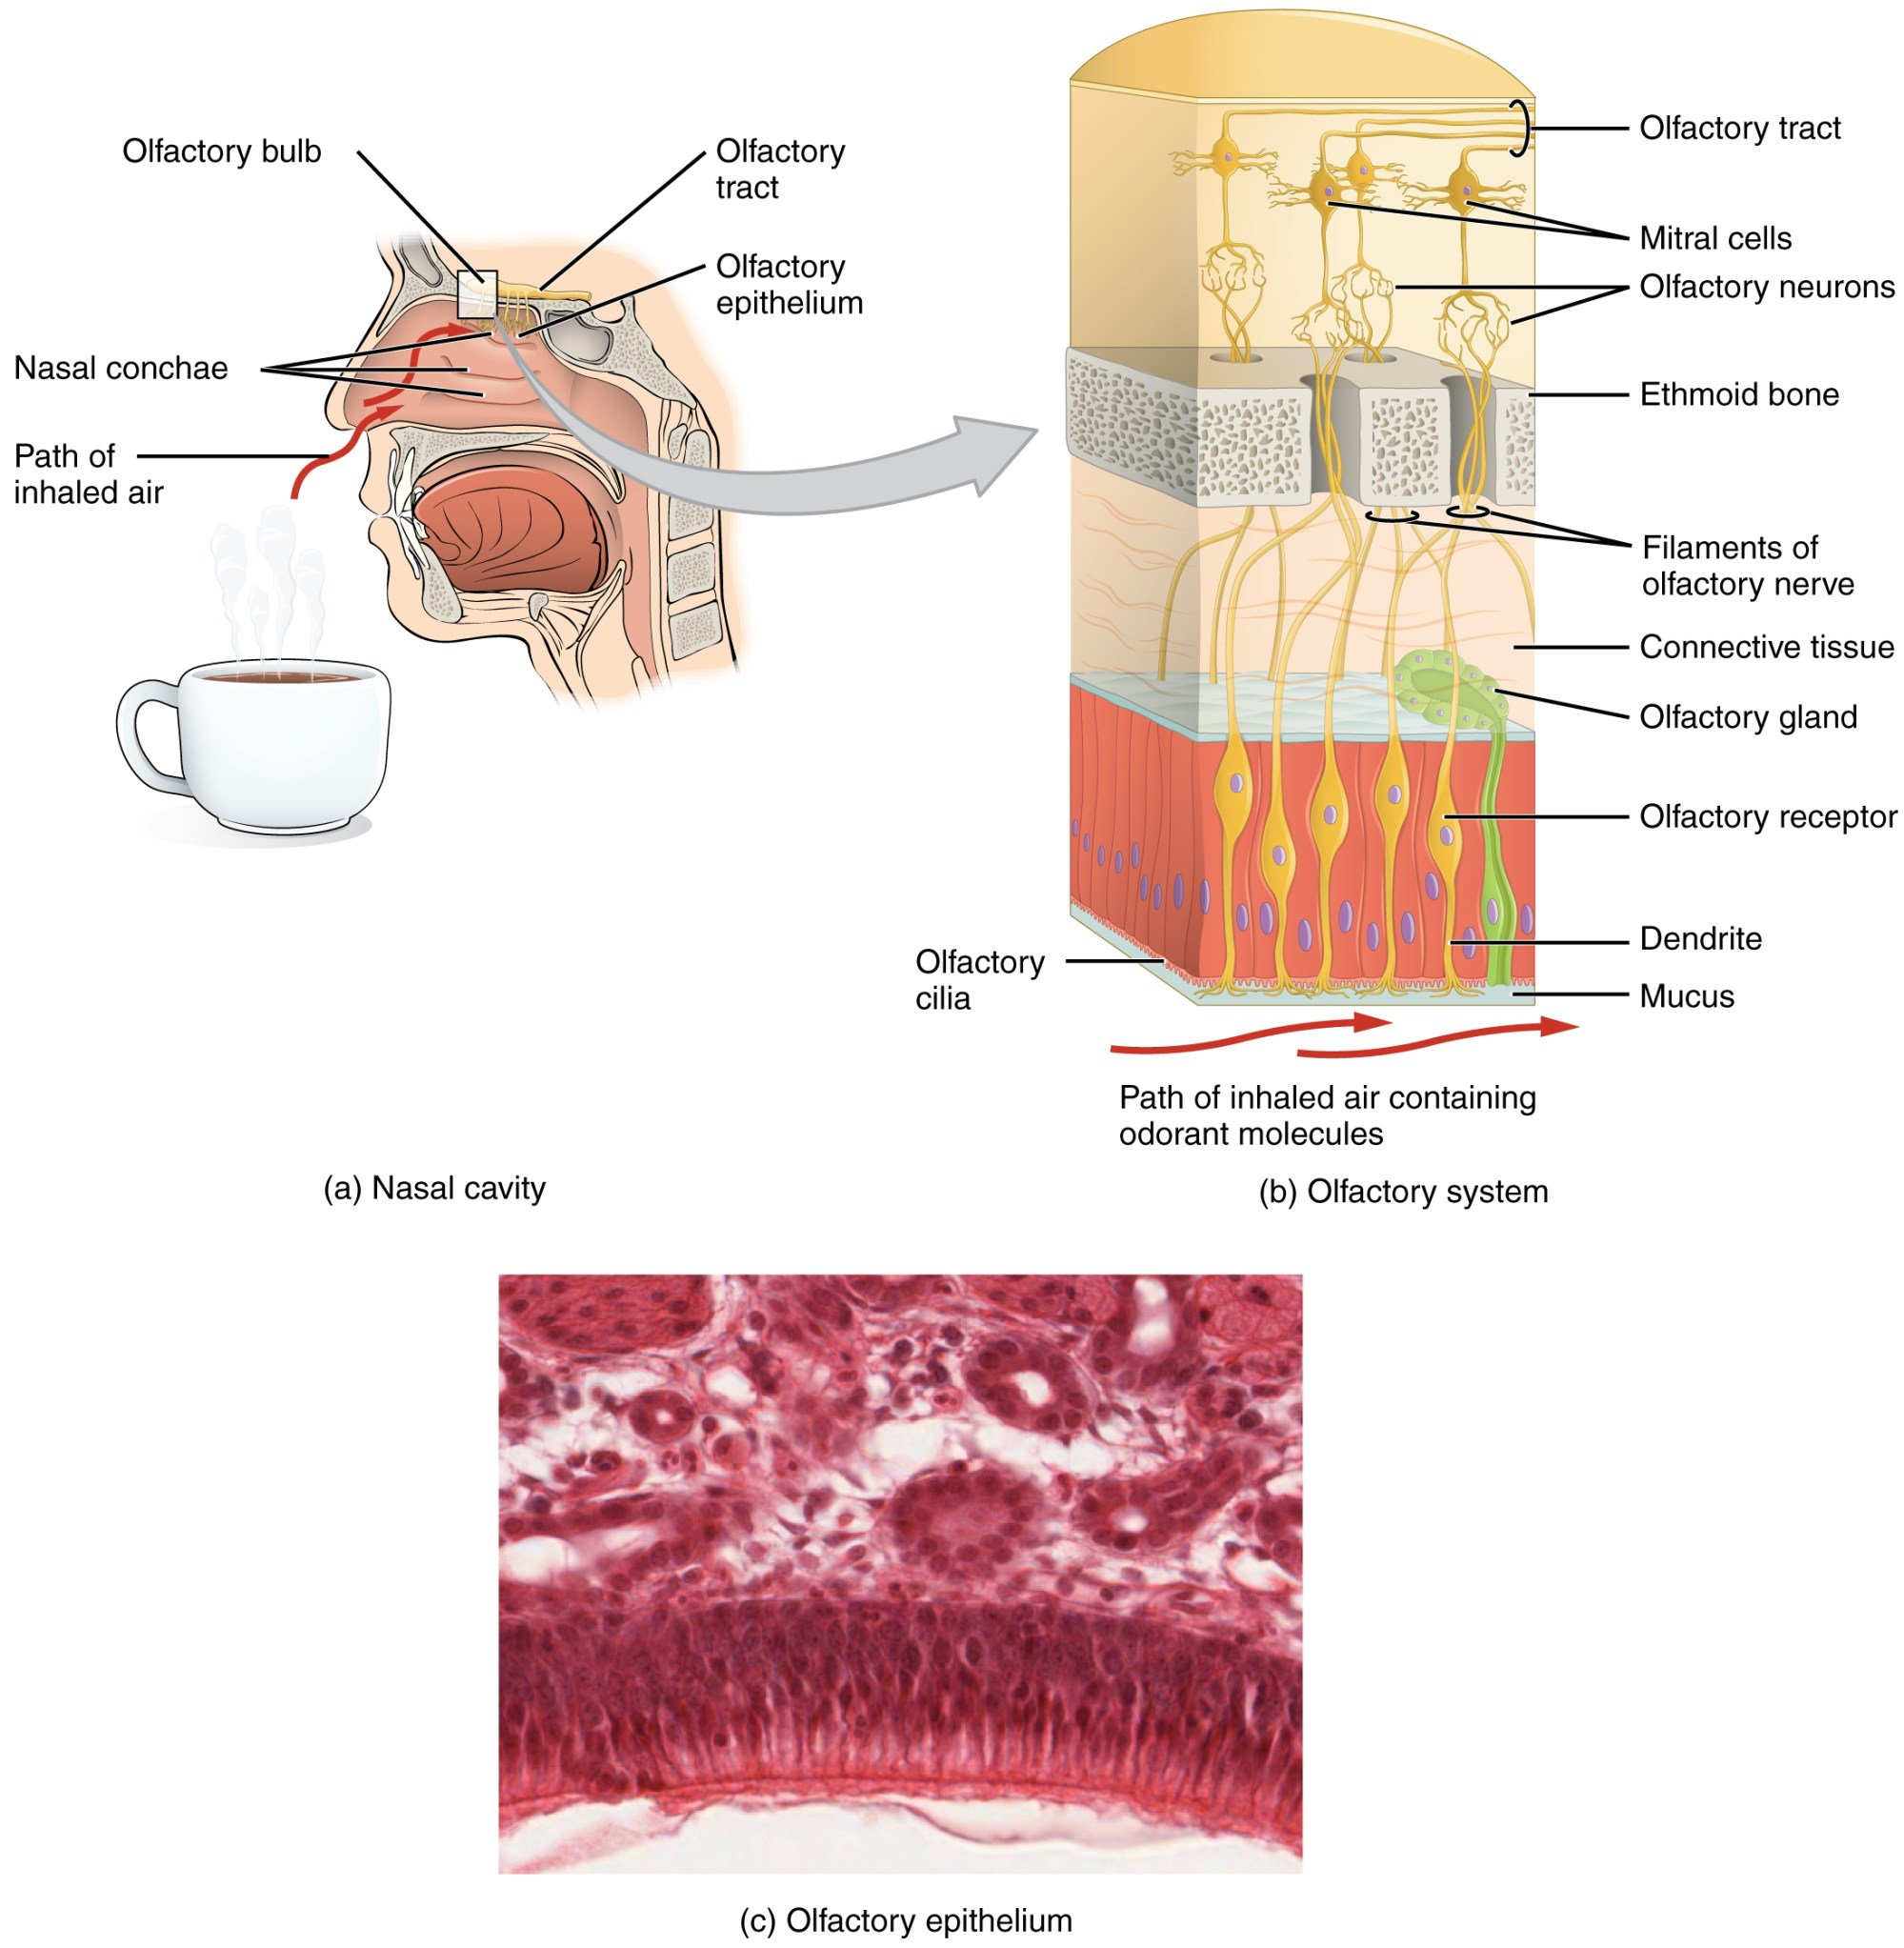 hight resolution of the olfactory system the top left panel of this image shows the side view of a person s face with